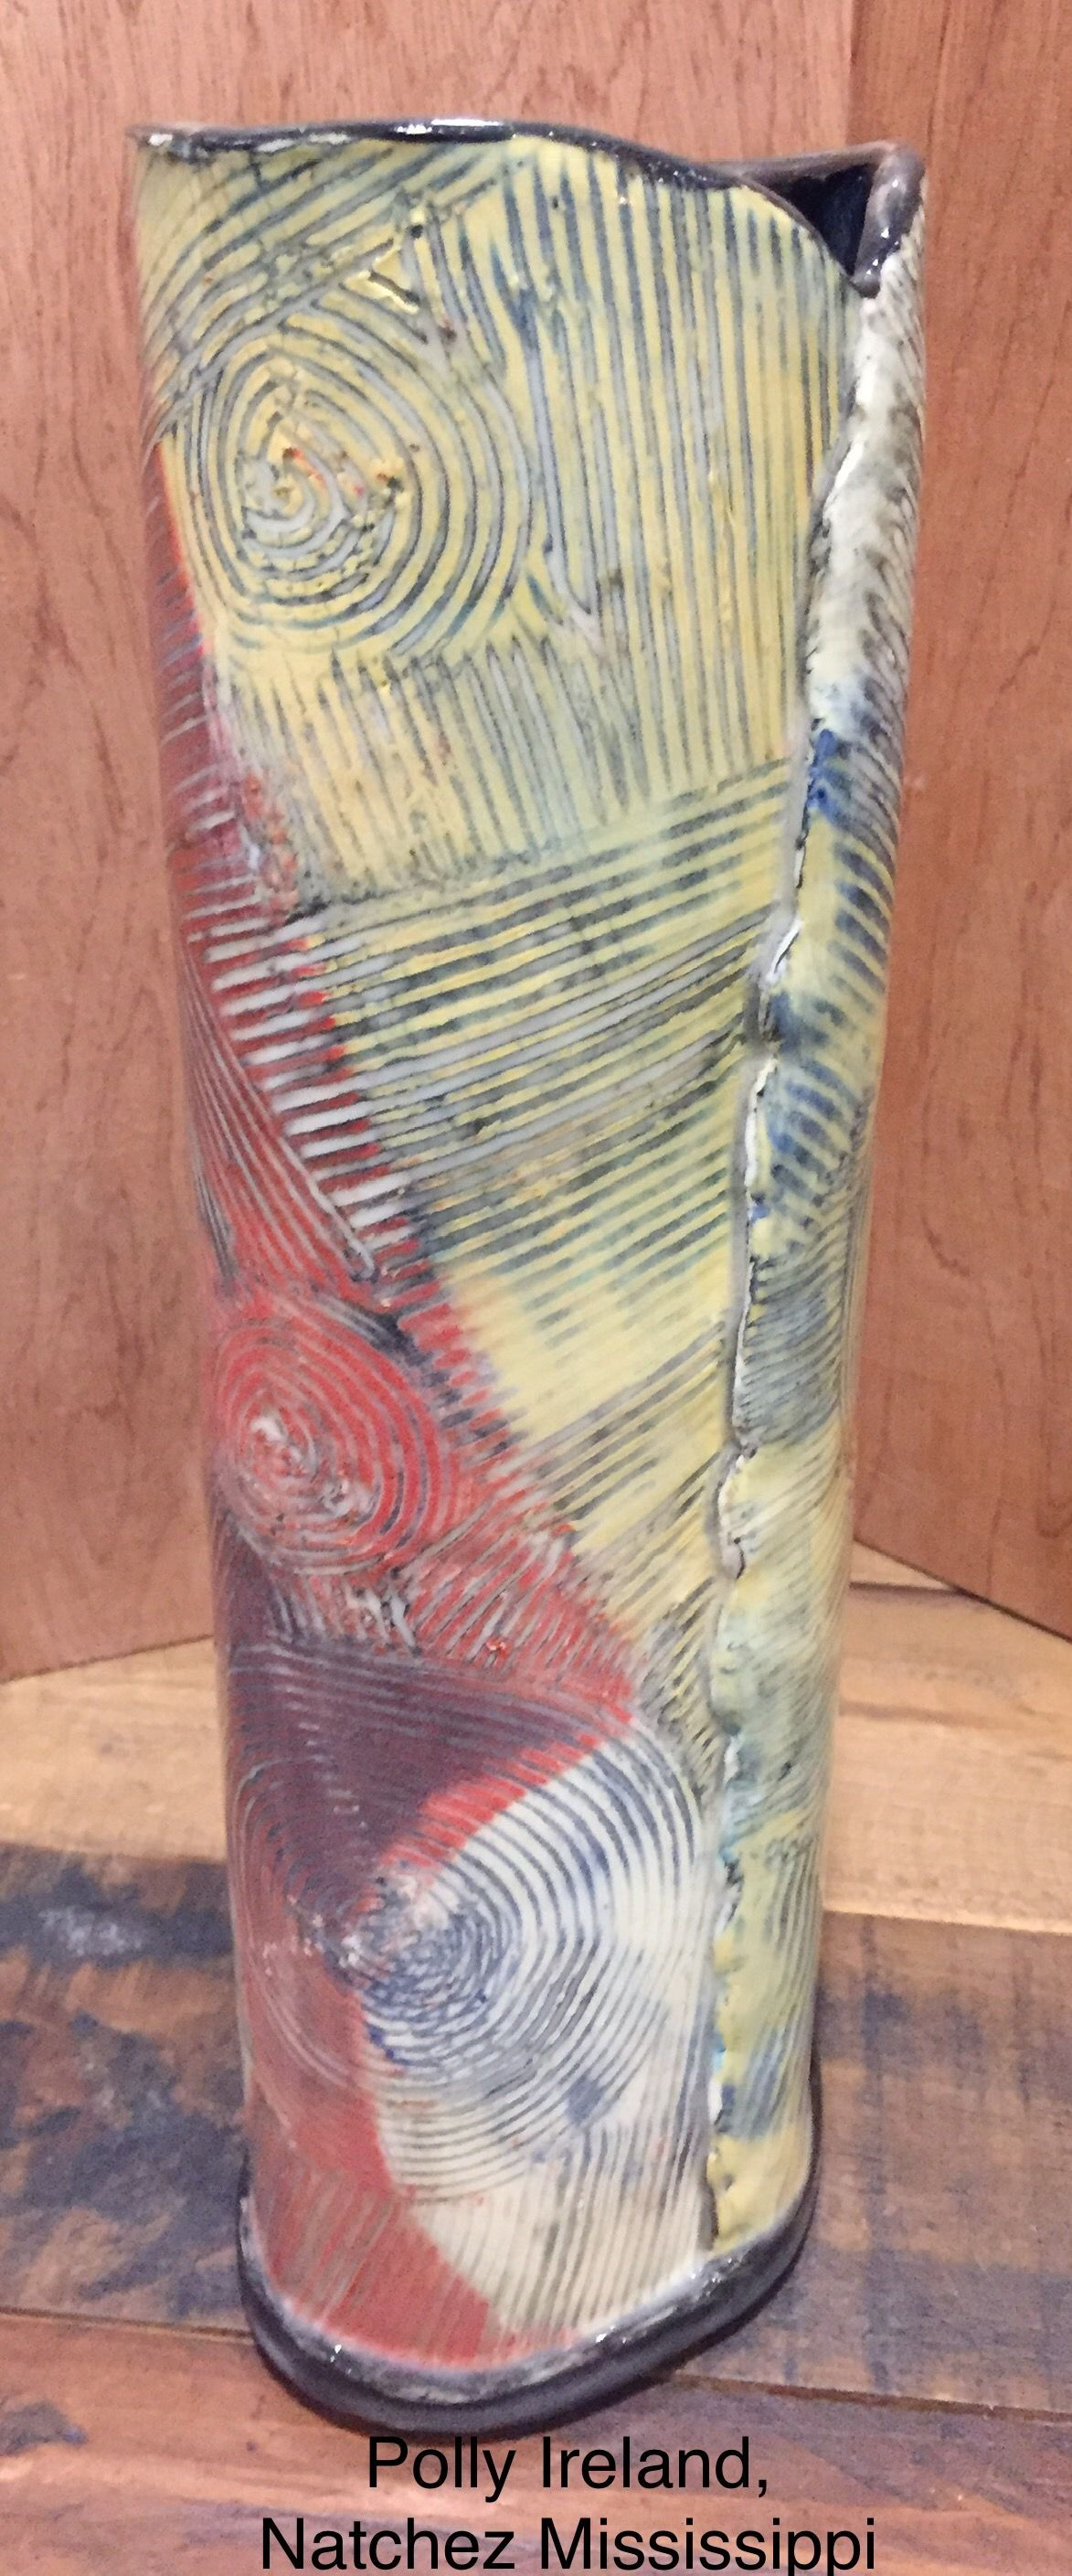 Vase Ceramic Vase With Layered And Carved Slips By Polly Ireland Natchez Mississippi Pottery Techniques Pottery Clay Vase